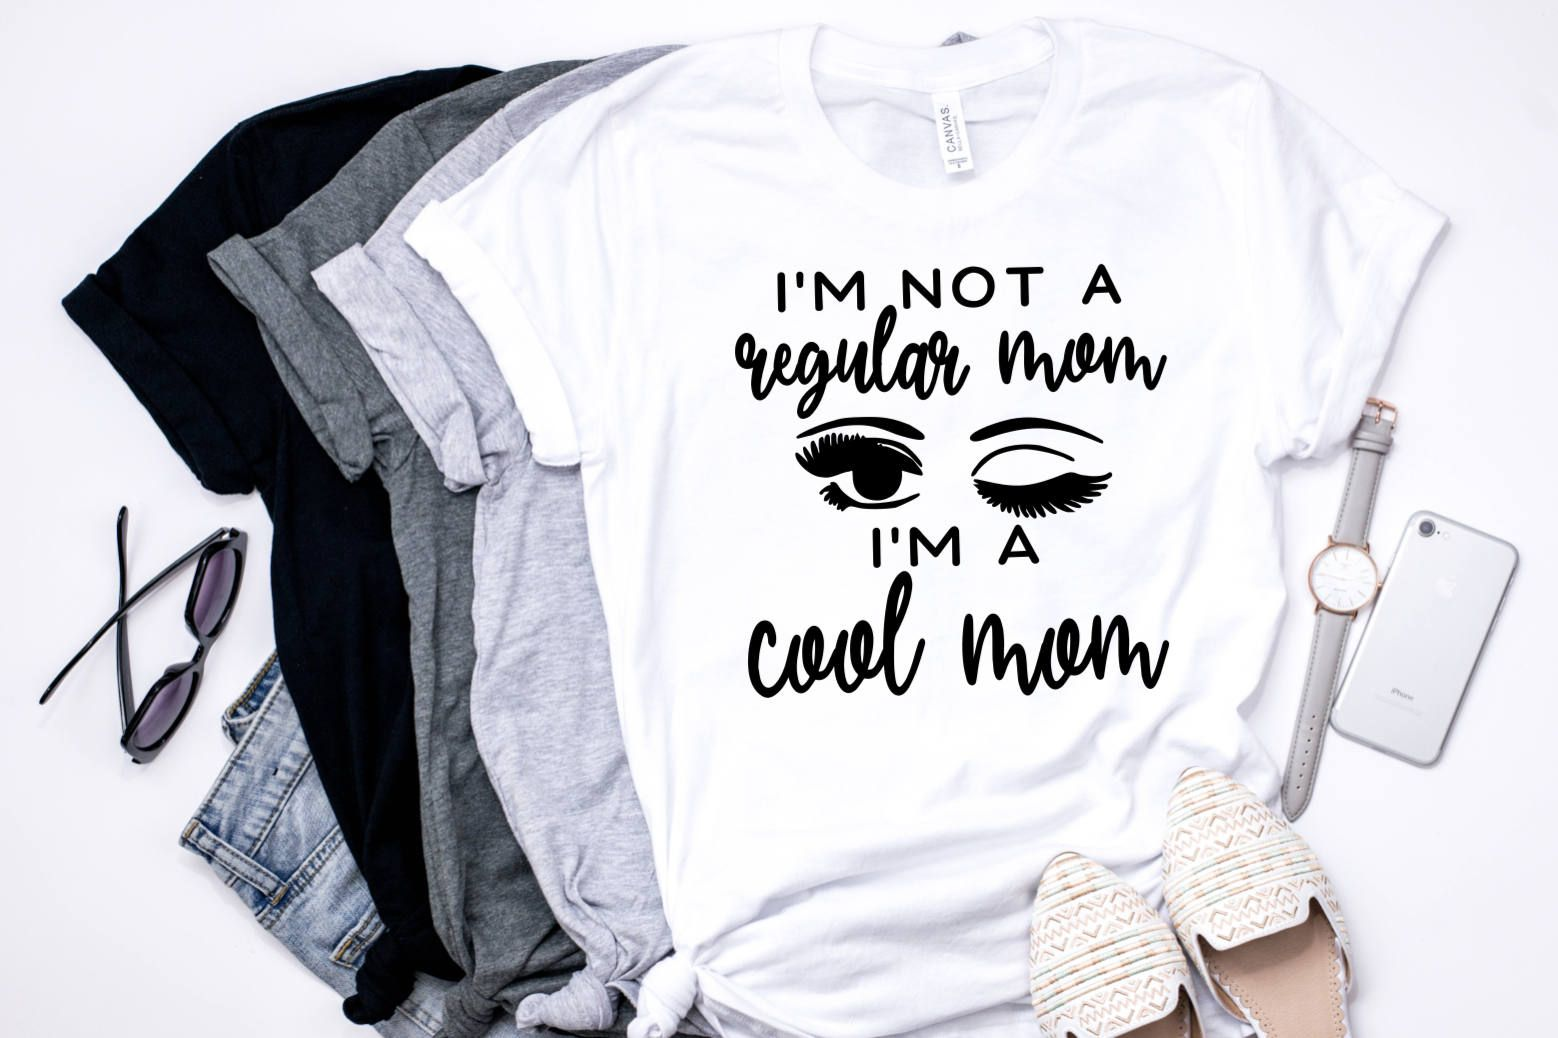 I'm Not A Regular Mom//I'm A Cool Mom//Mean Girls//Graphic T-Shirt by SavageSeamsCo on Etsy